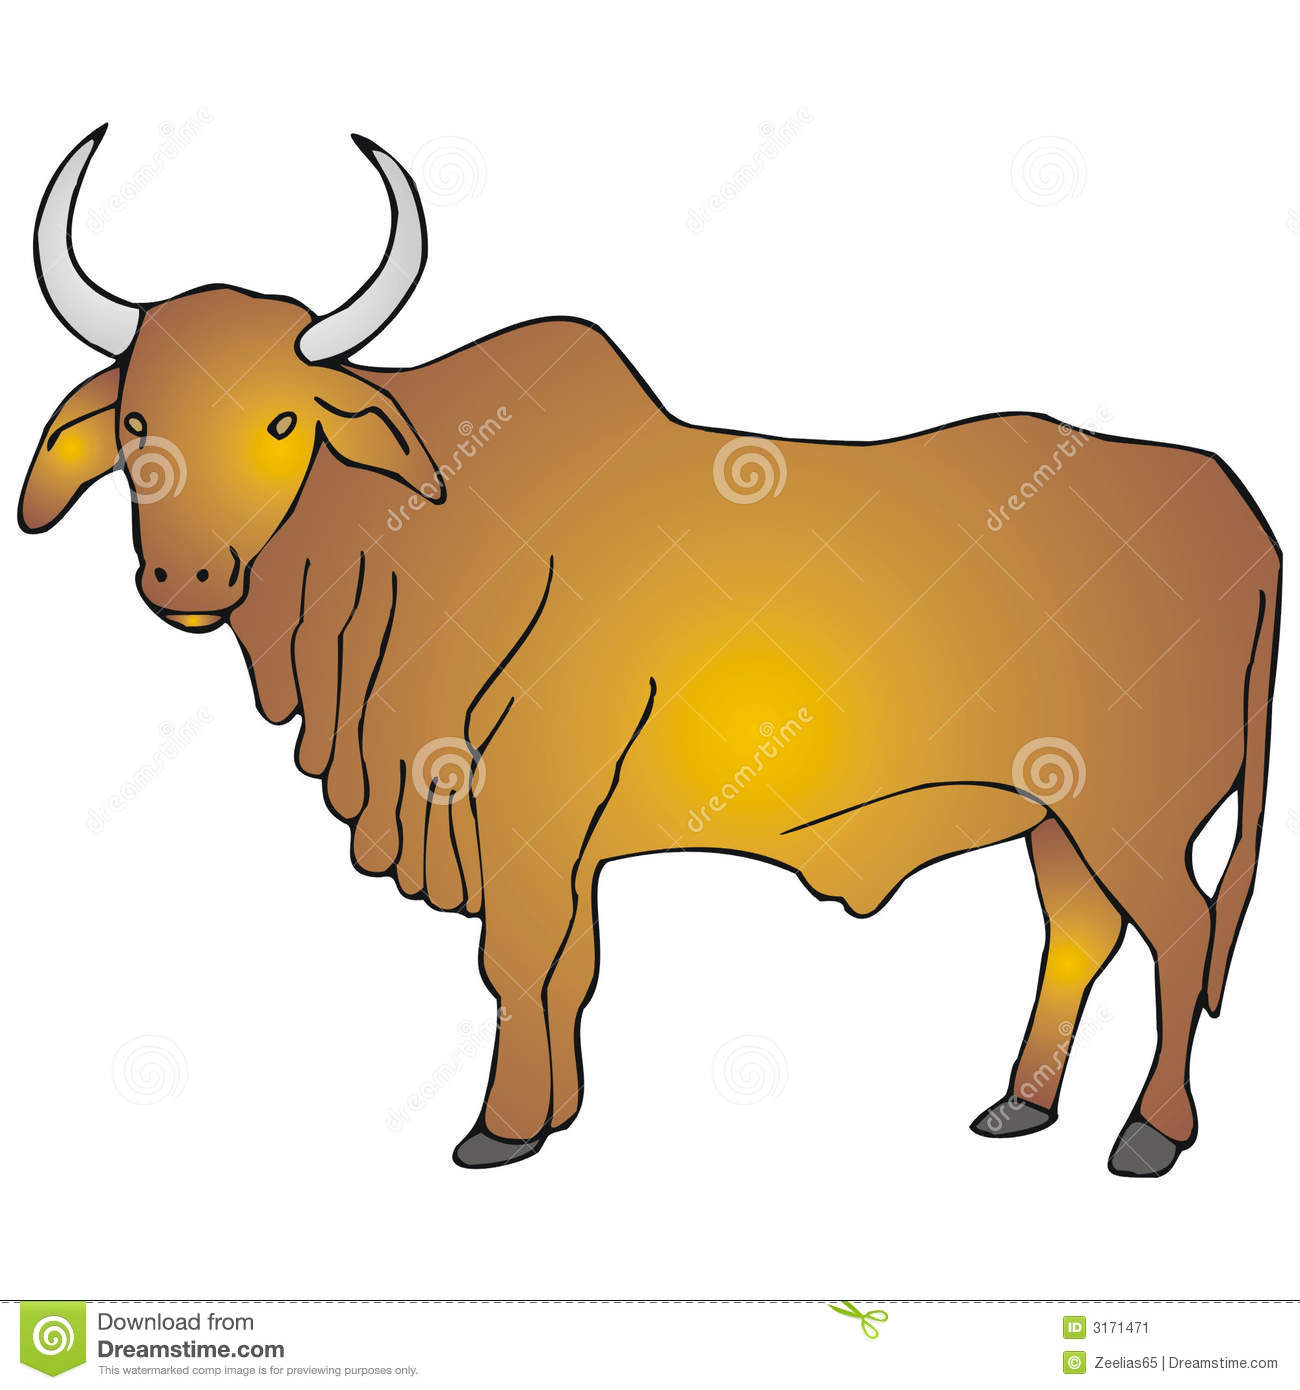 Clipart of a ox with a plow without a wip jpg black and white Ox clipart - 149 transparent clip arts, images and pictures for free ... jpg black and white